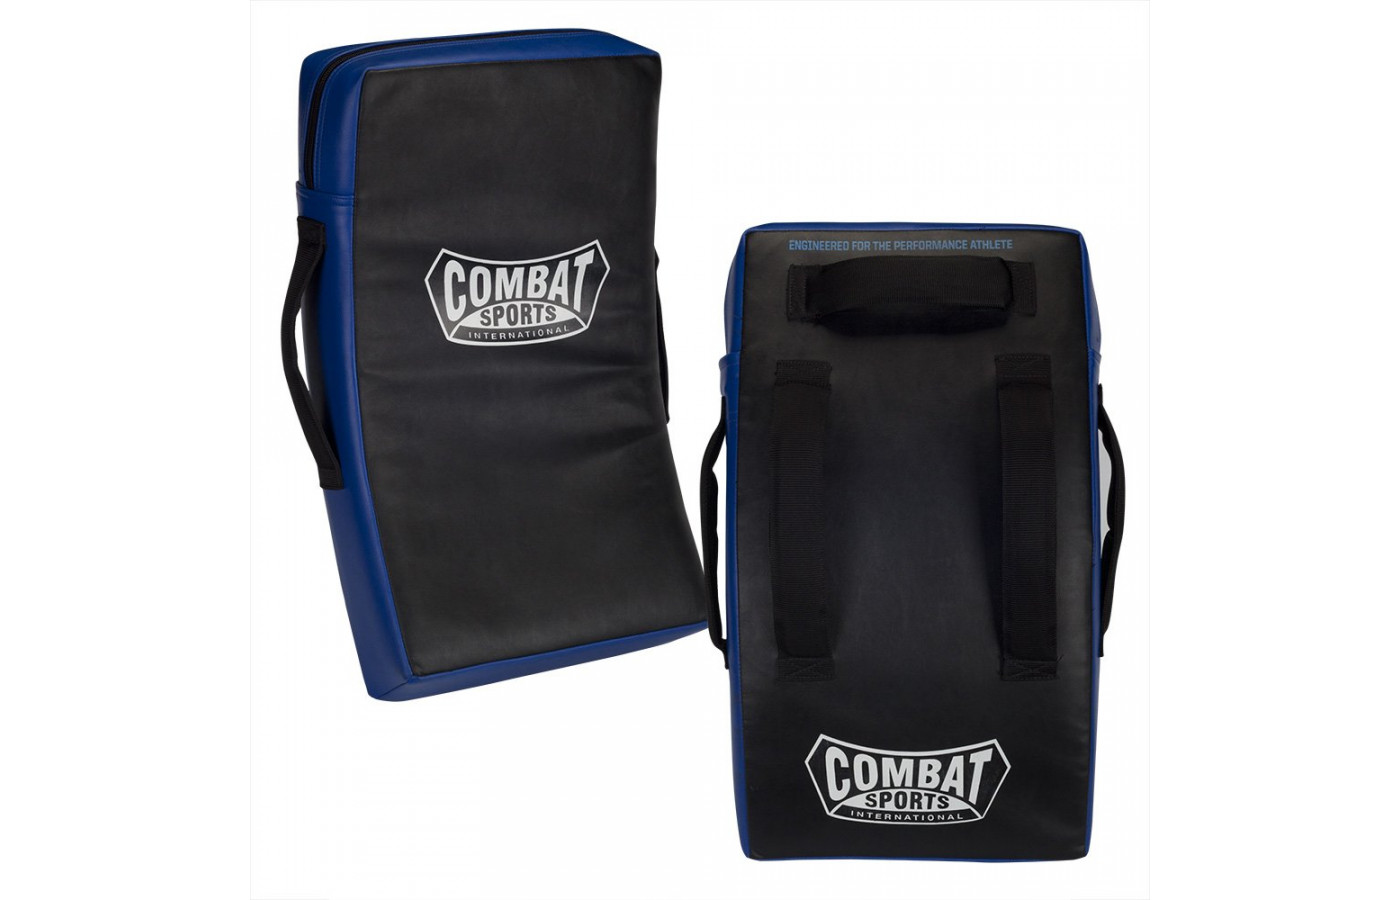 combat sports curved